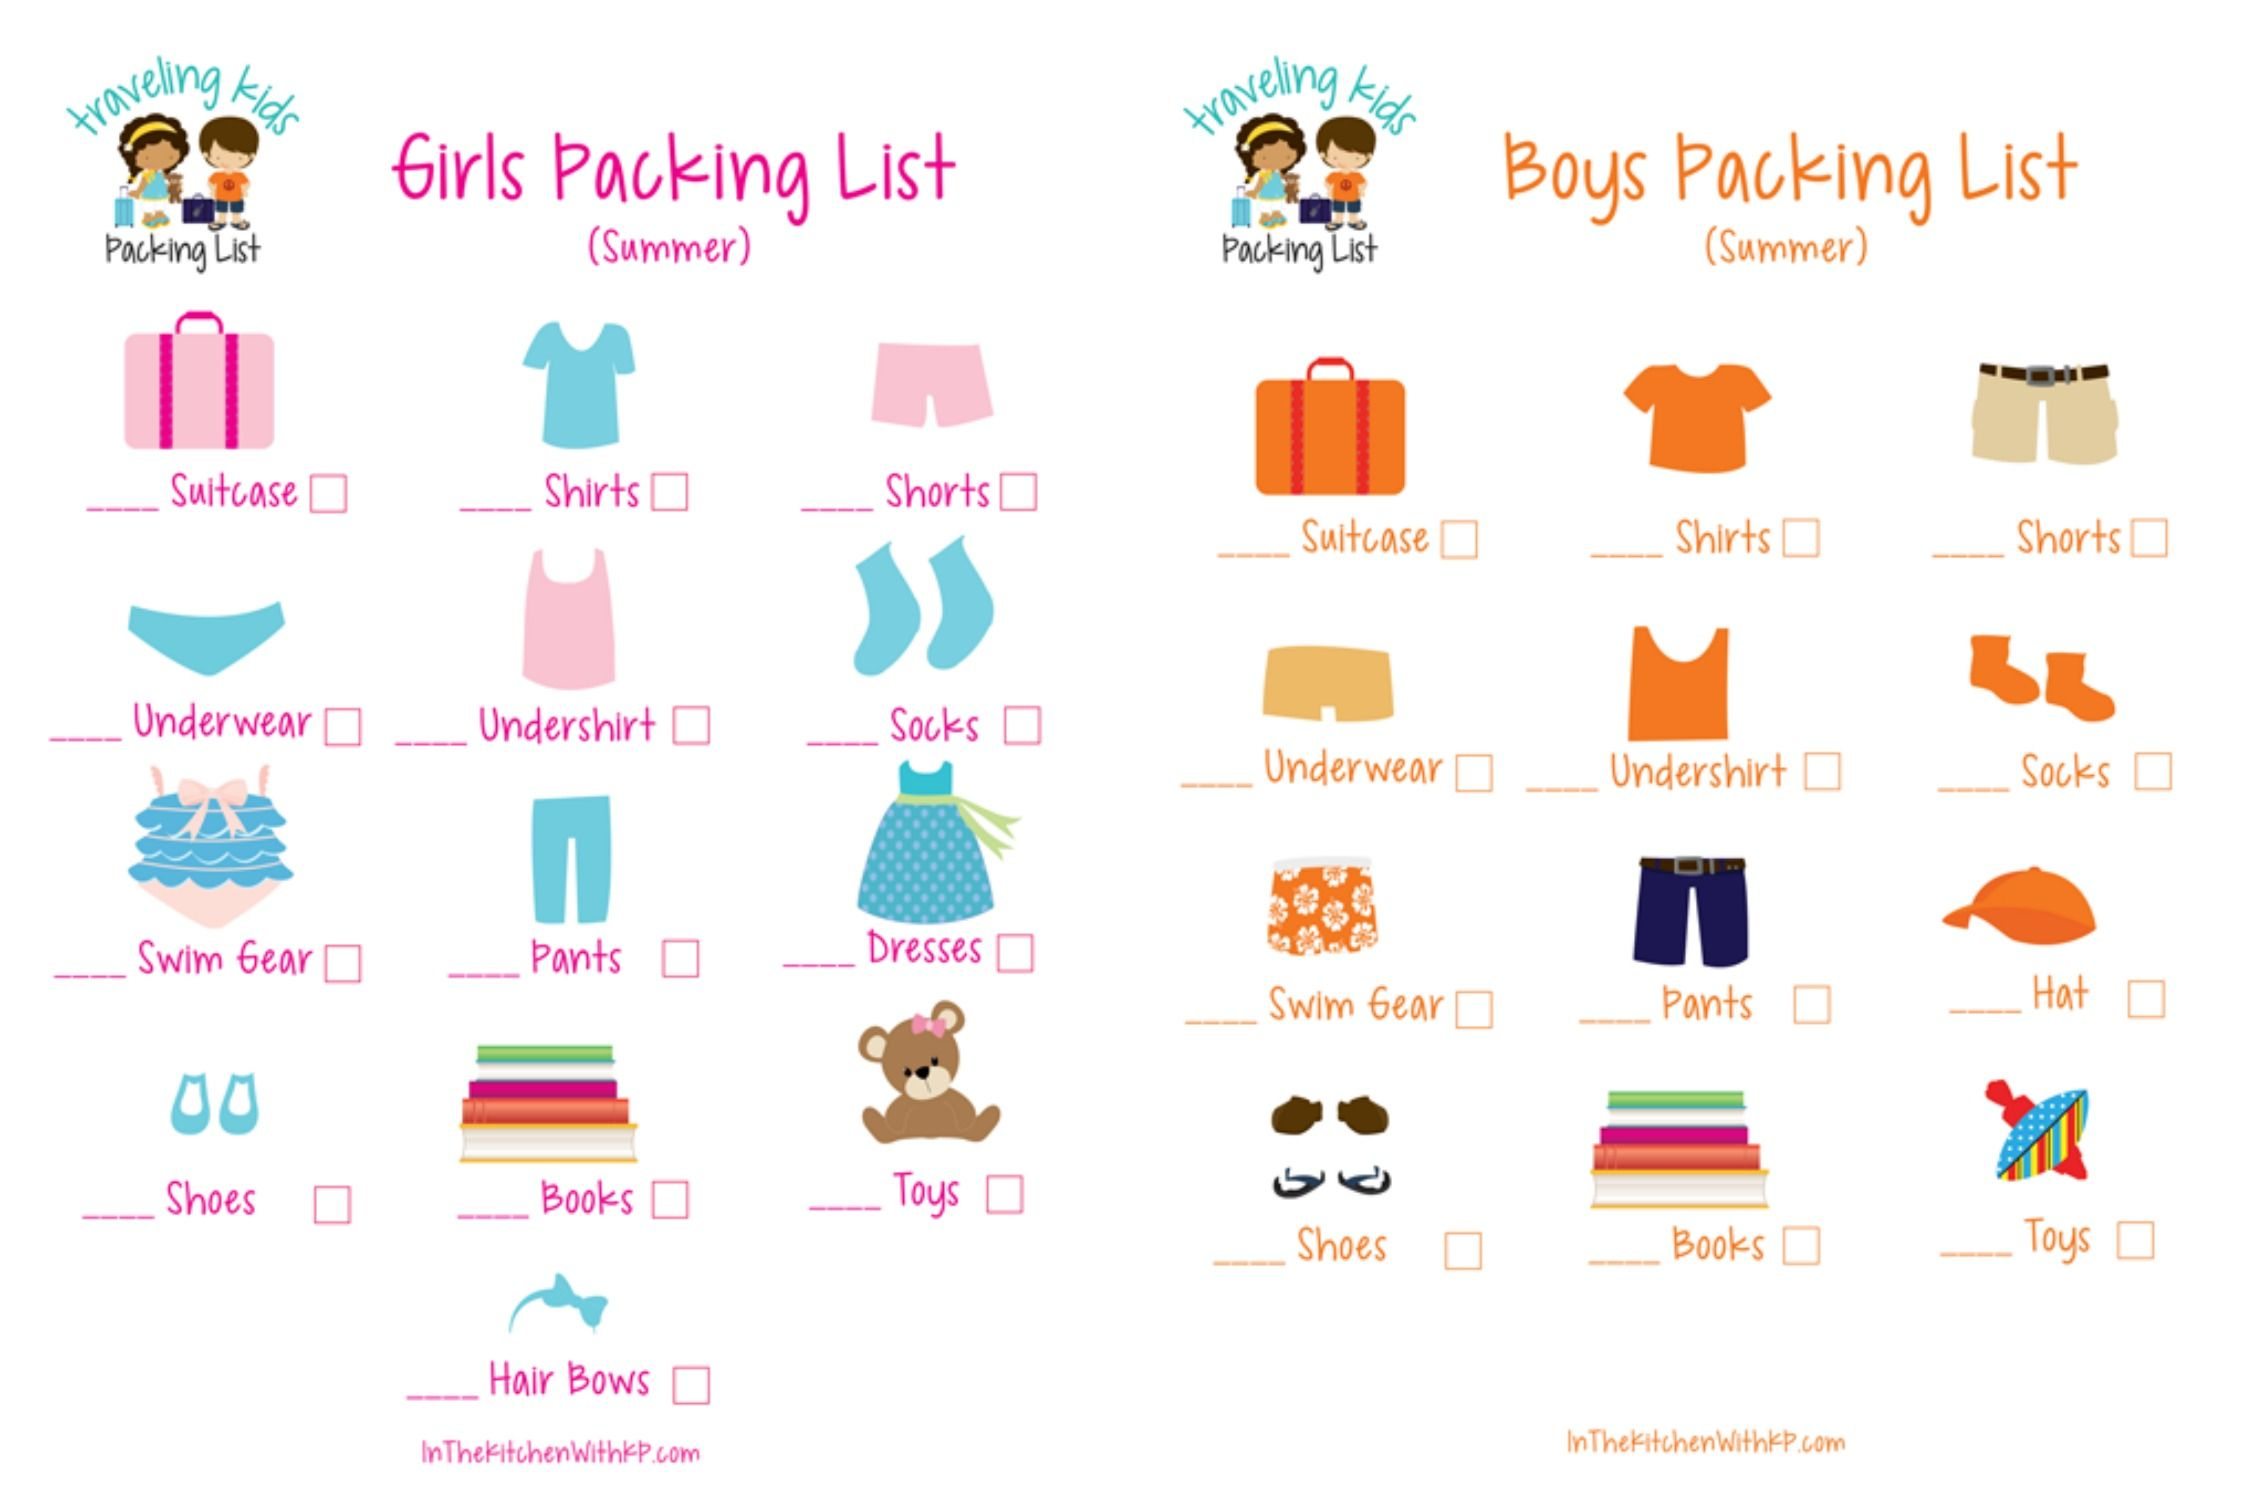 Printable Picture Packing List For Preschoolers InTheKitchenWithKP Travel PackingList